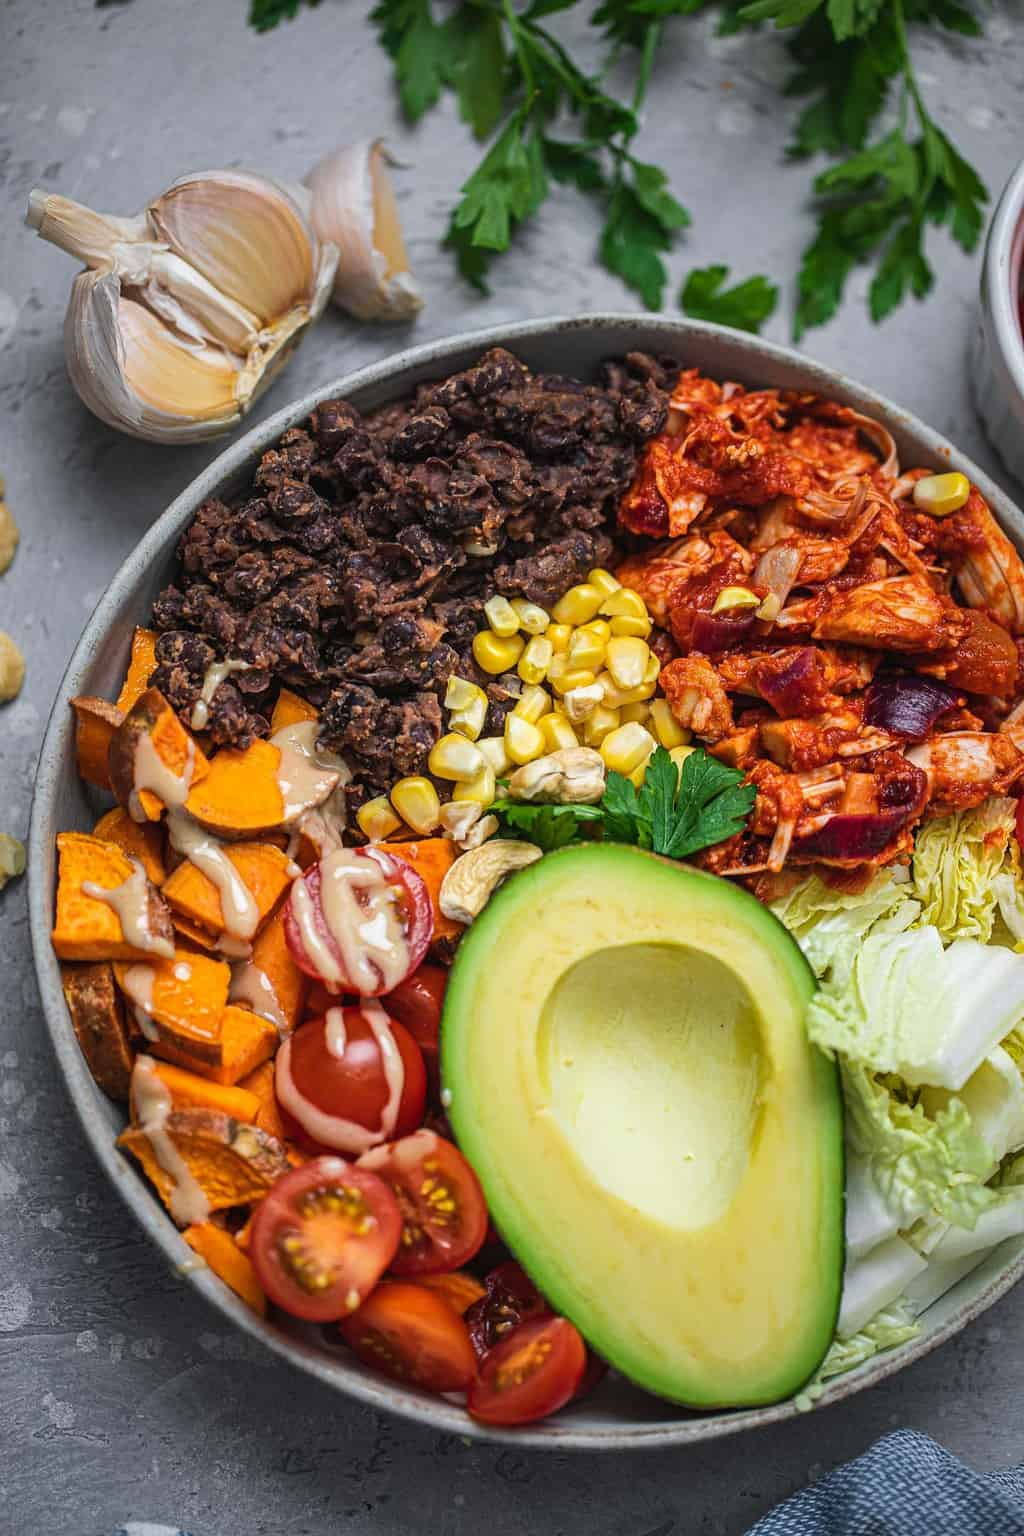 Bowl with black beans, sweet potato, lettuce, avocado, sweetcorn and tahini